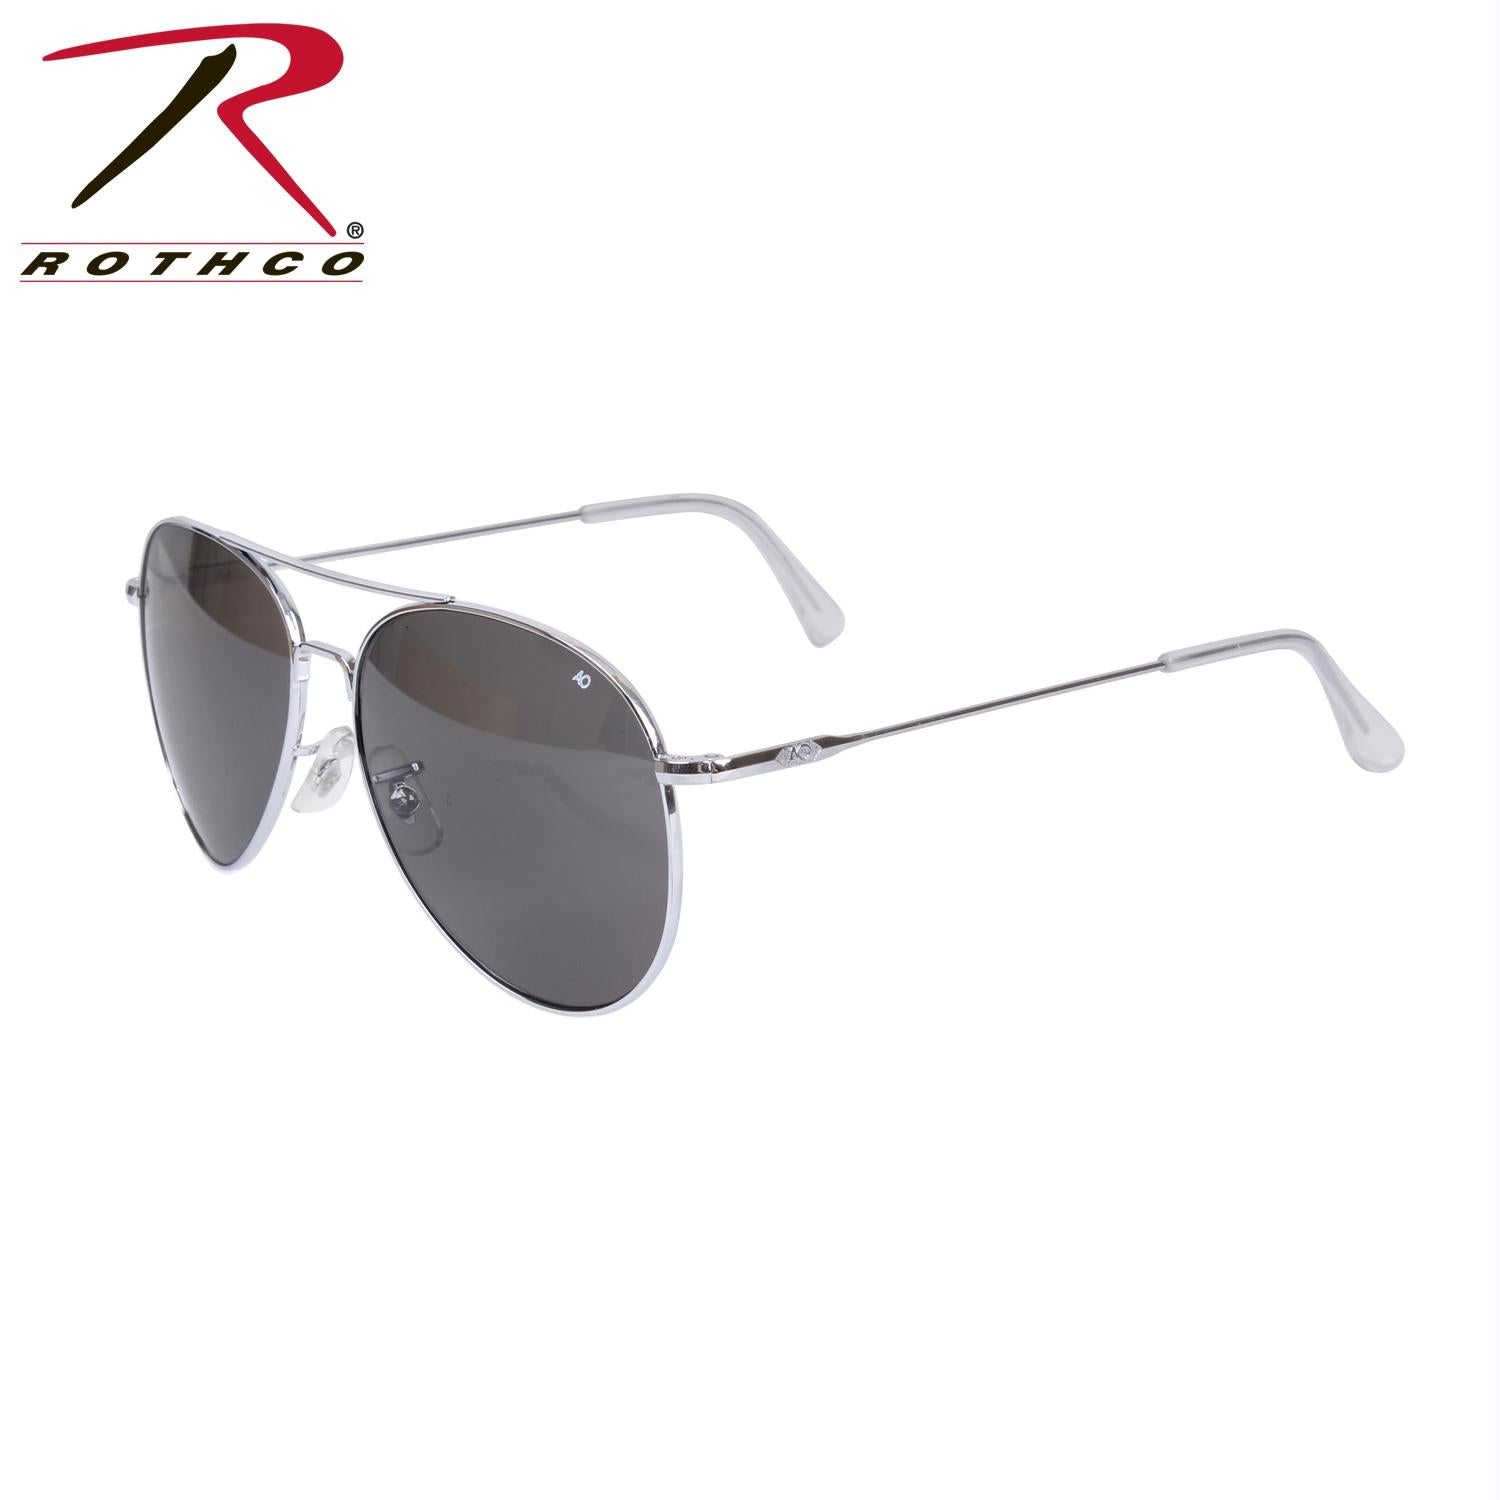 American Optical 58MM General Aviator Sunglasses - Chrome